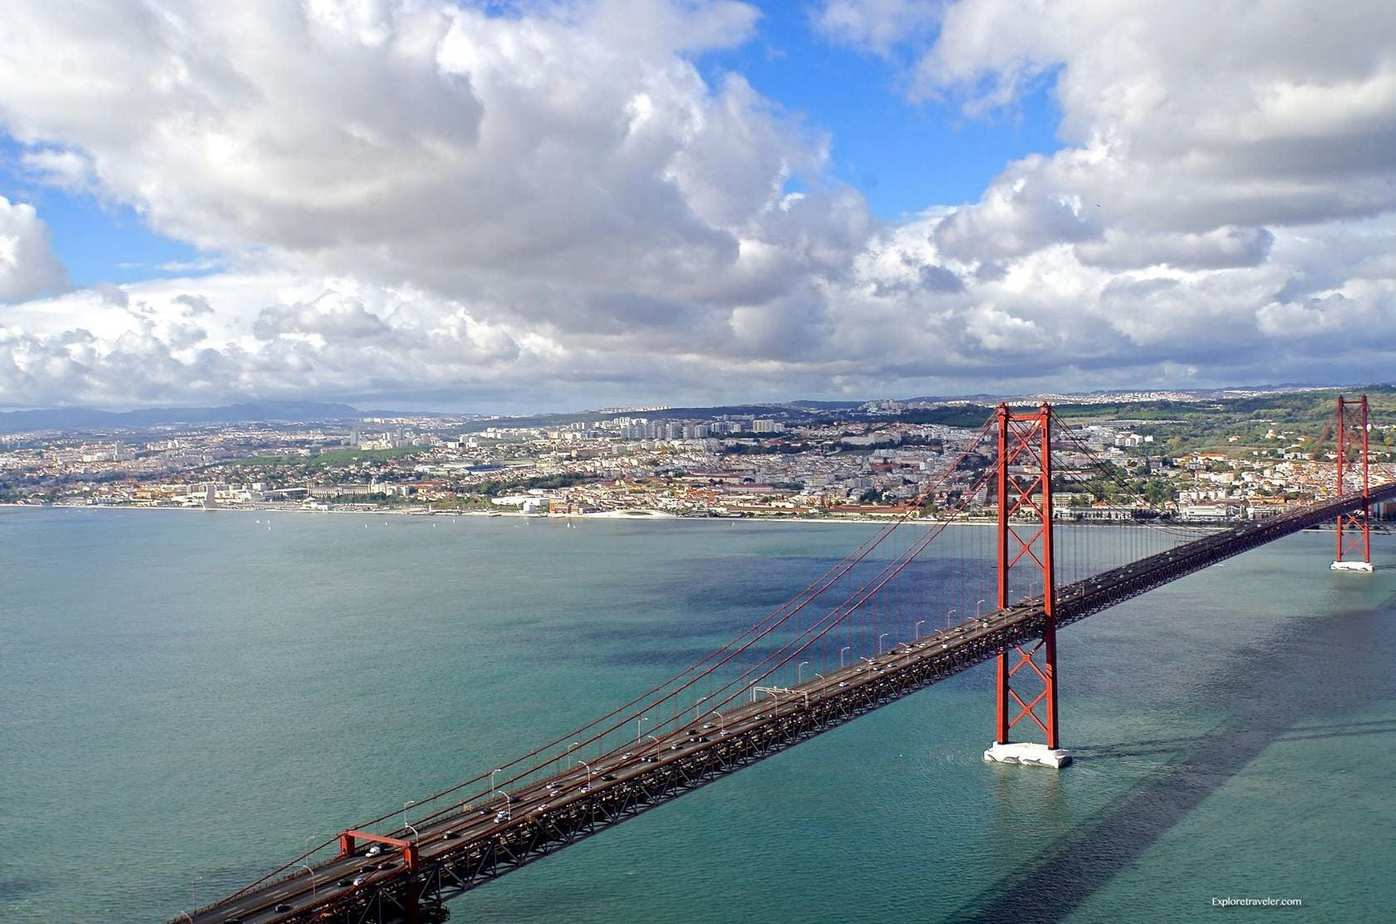 ExploreTraveler Presents: Exploring Lisbon Portugal Part 1 - A bridge over a body of water - Ponte 25 de Abril